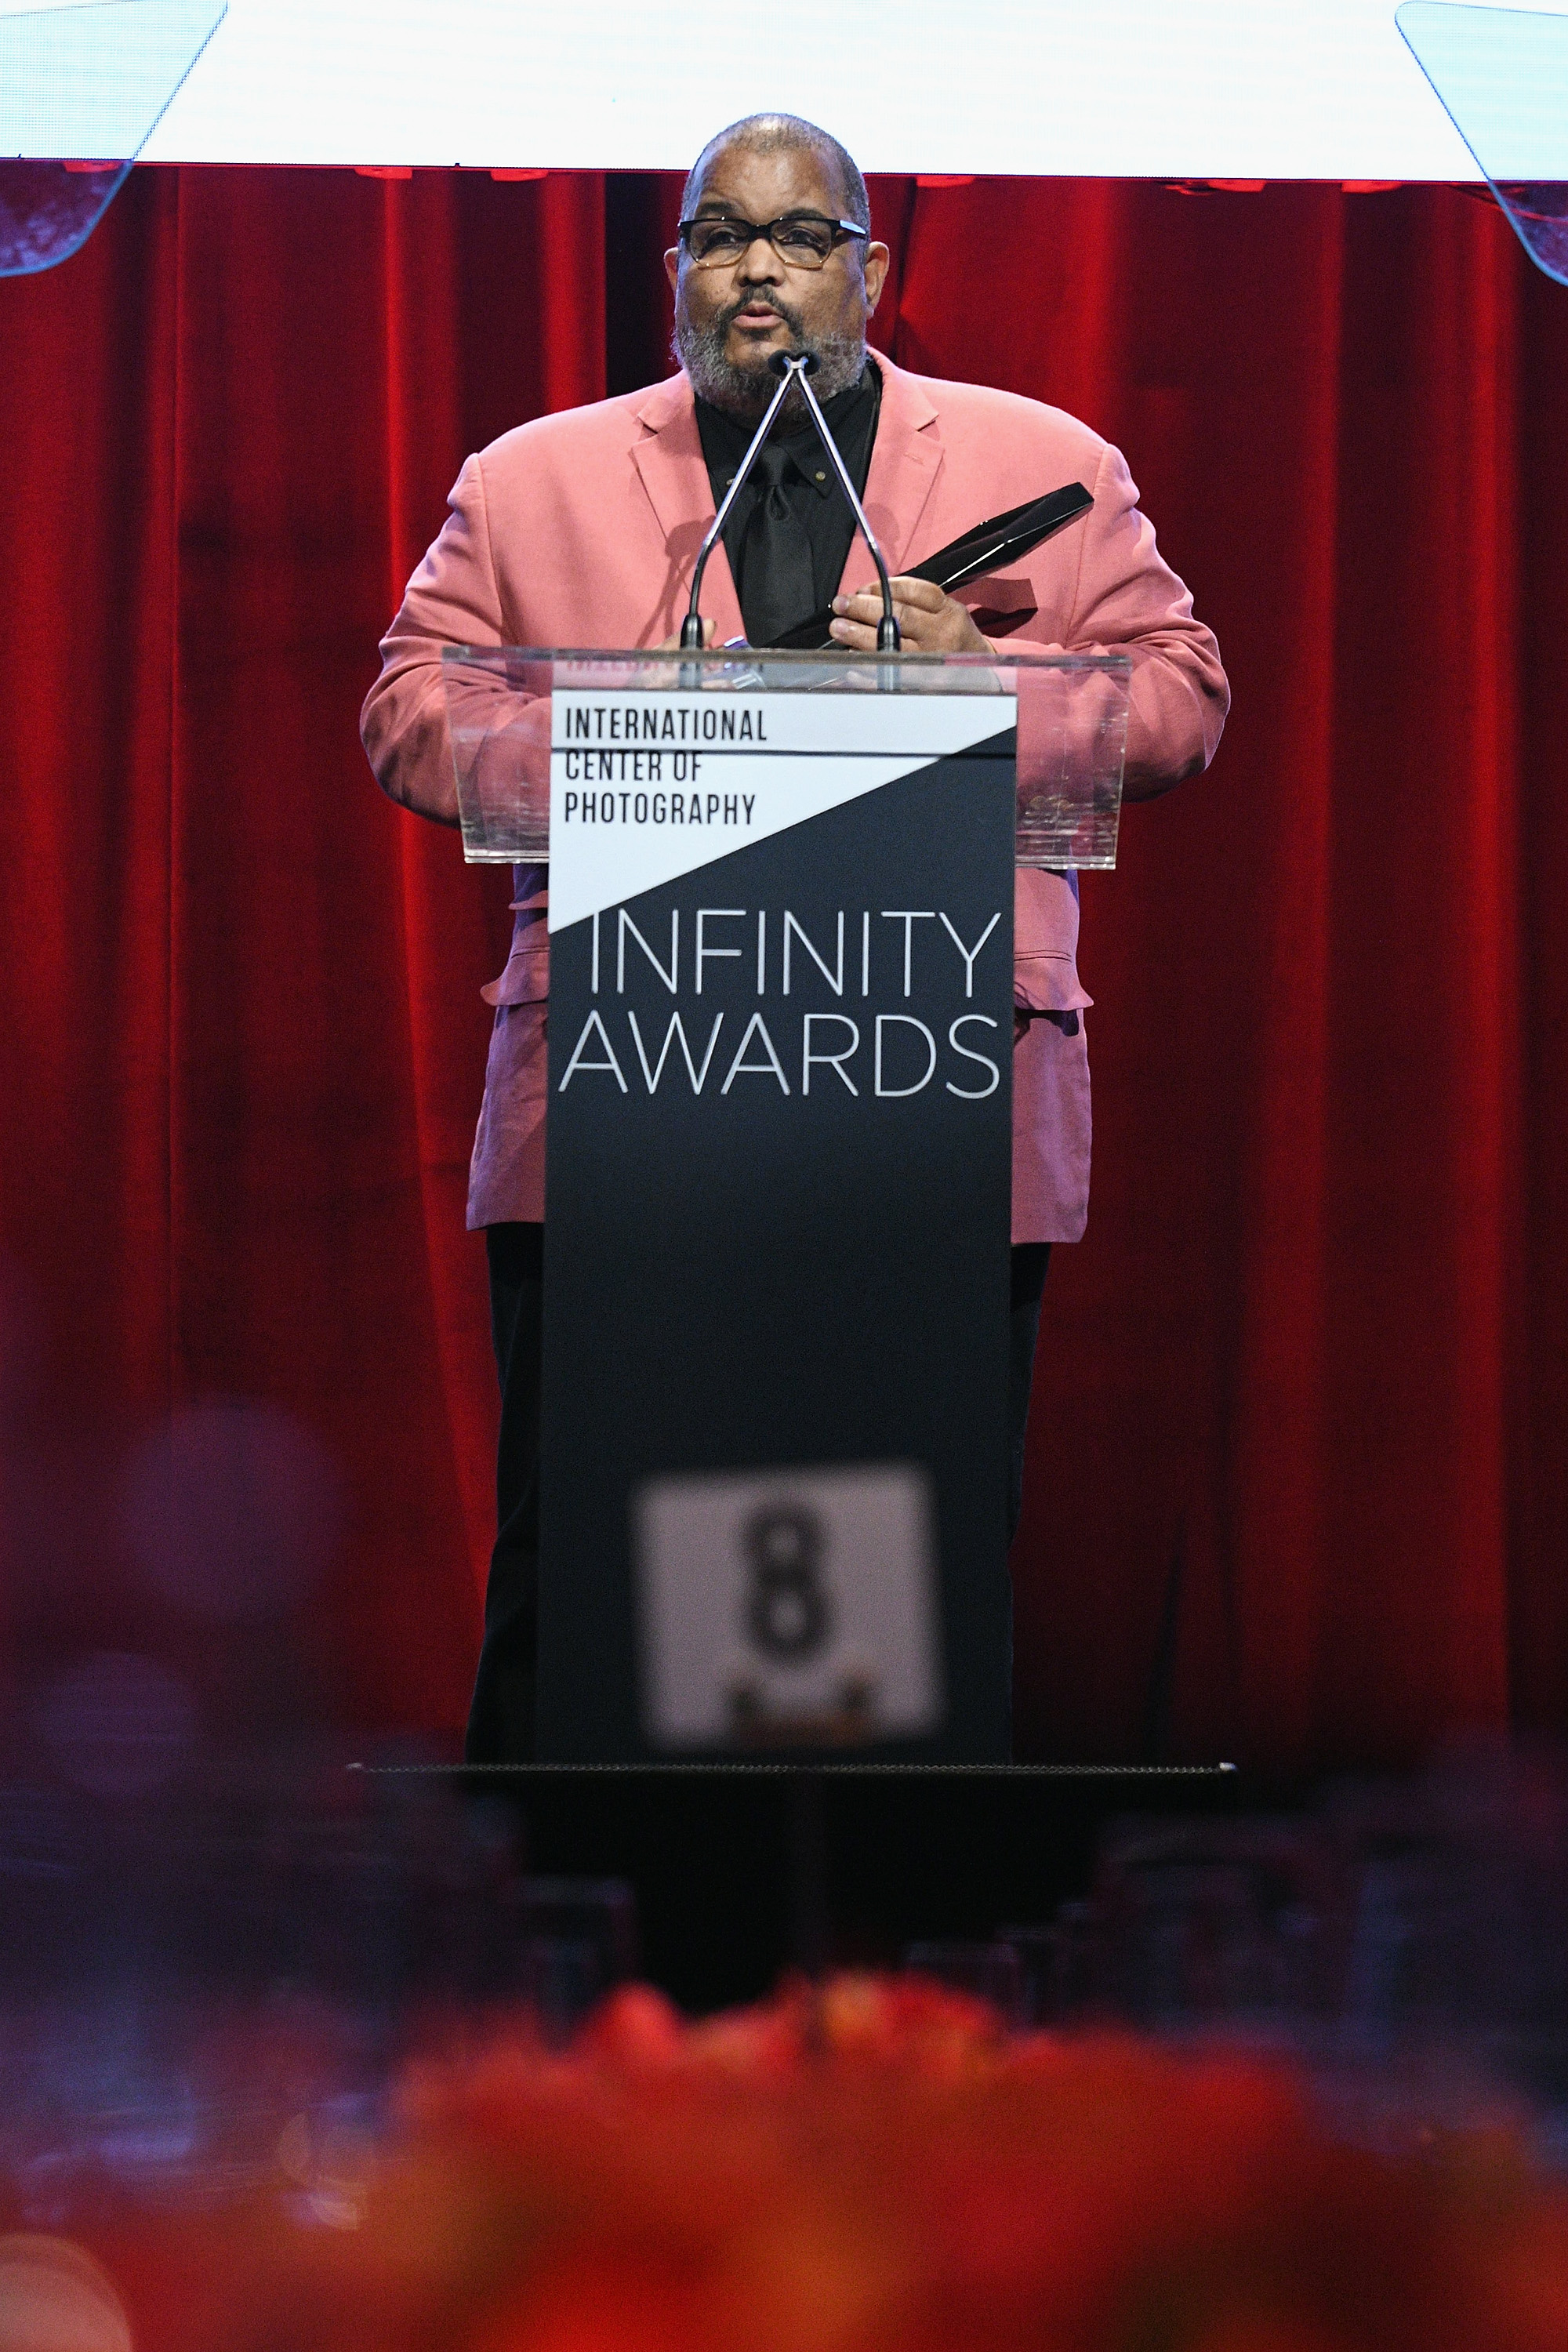 NEW YORK, NY - APRIL 02: Honoree and photographer Dawoud Bey speaks onstage during The International Center Of Photography's 35th Annual Infinity Awards at The Ziegfeld Ballroom on April 2, 2019 in New York City. (Photo by Bryan Bedder/Getty Images for International Center of Photography)